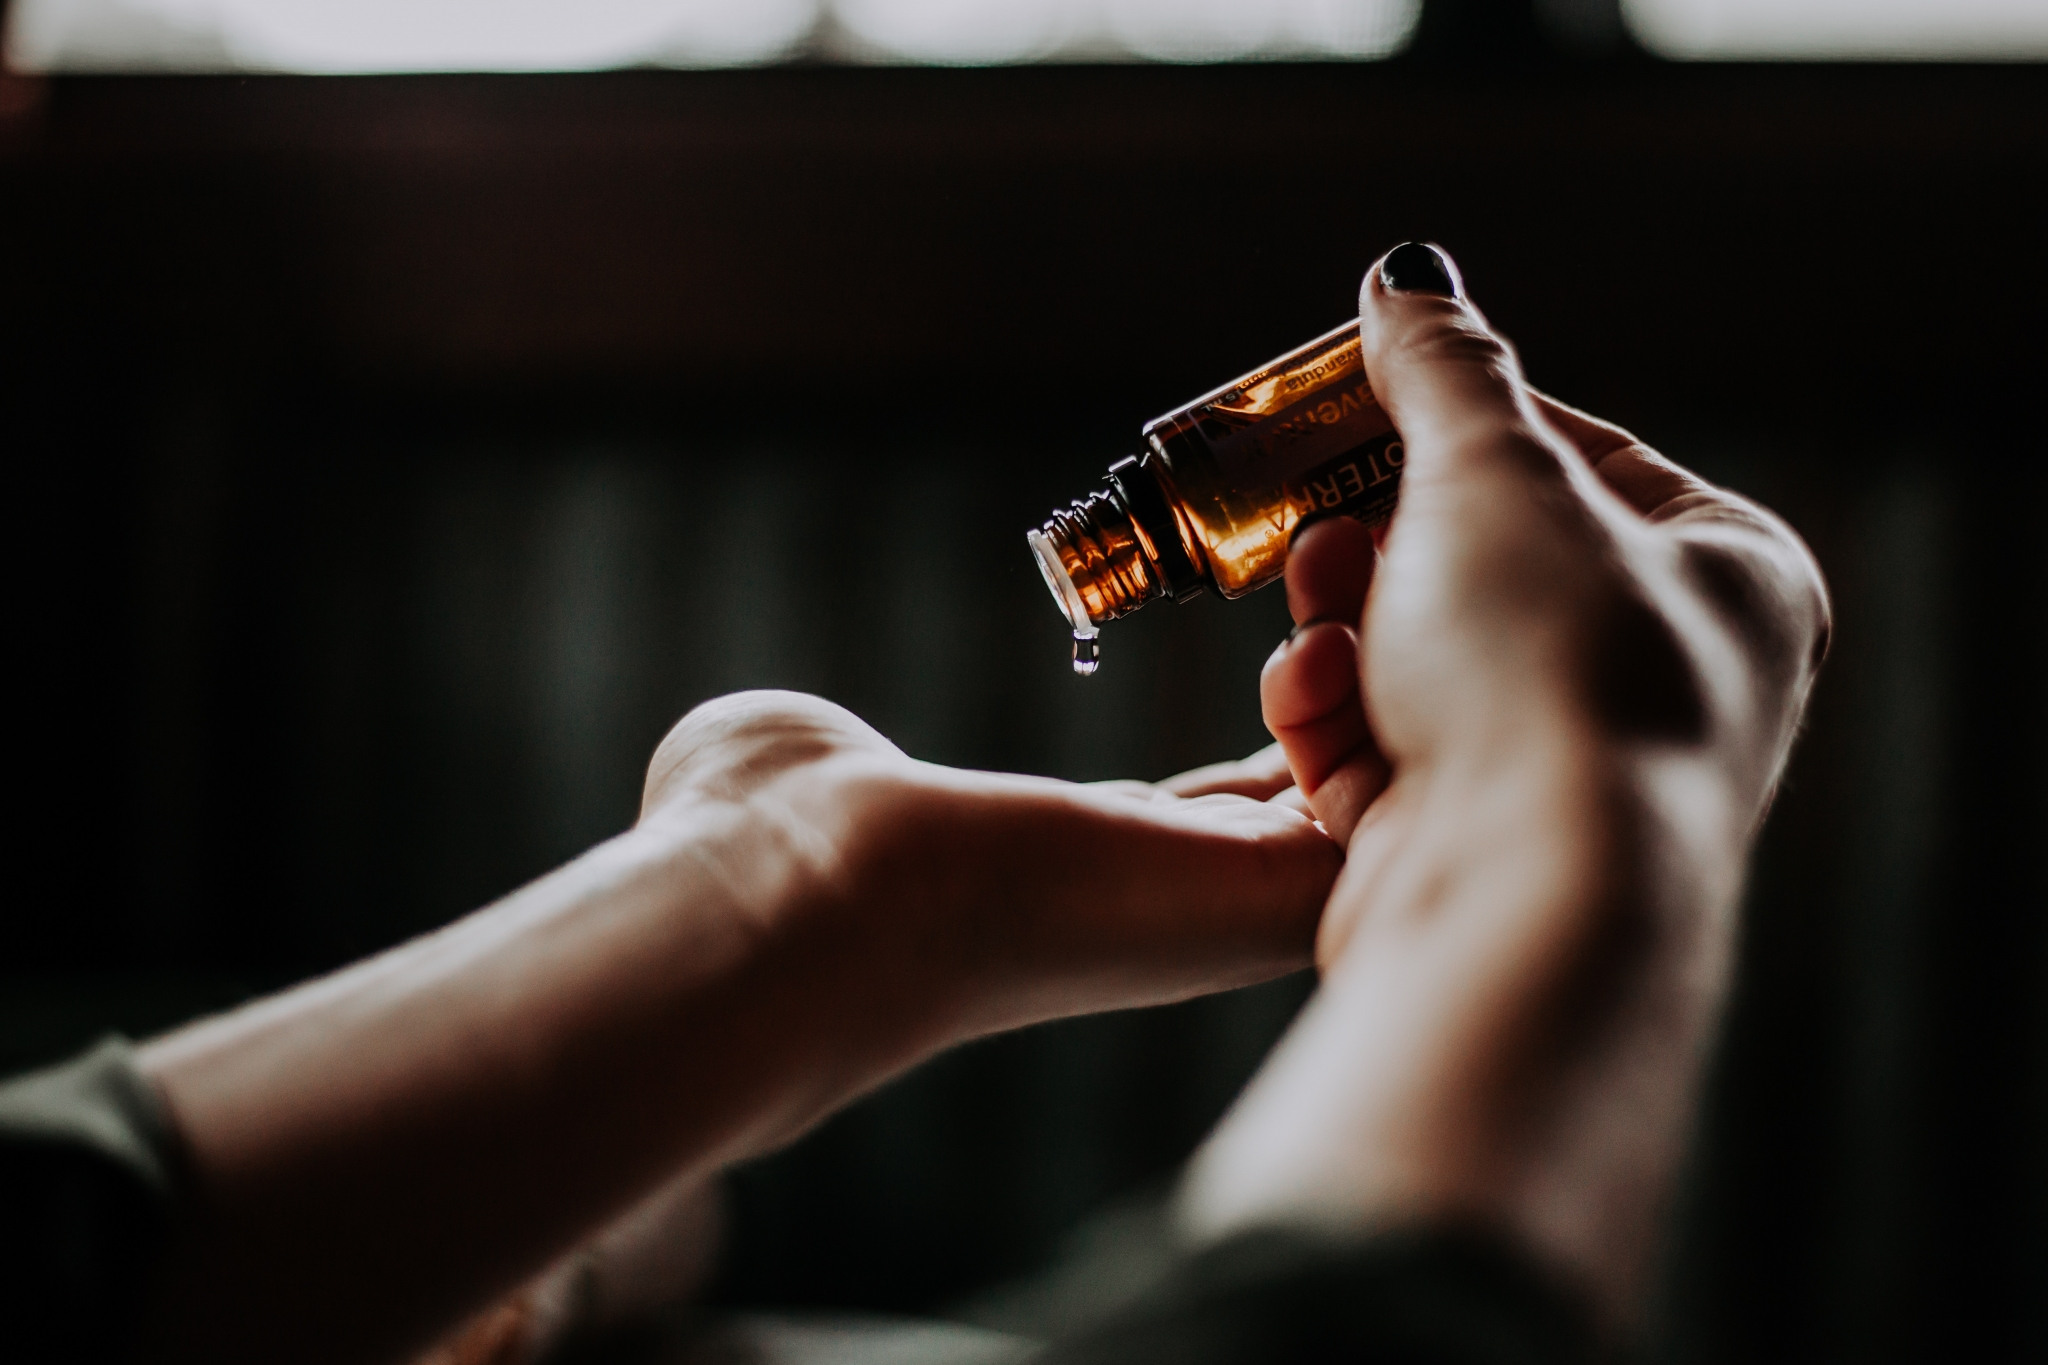 christin hume unsplash essential oil aromatherapy